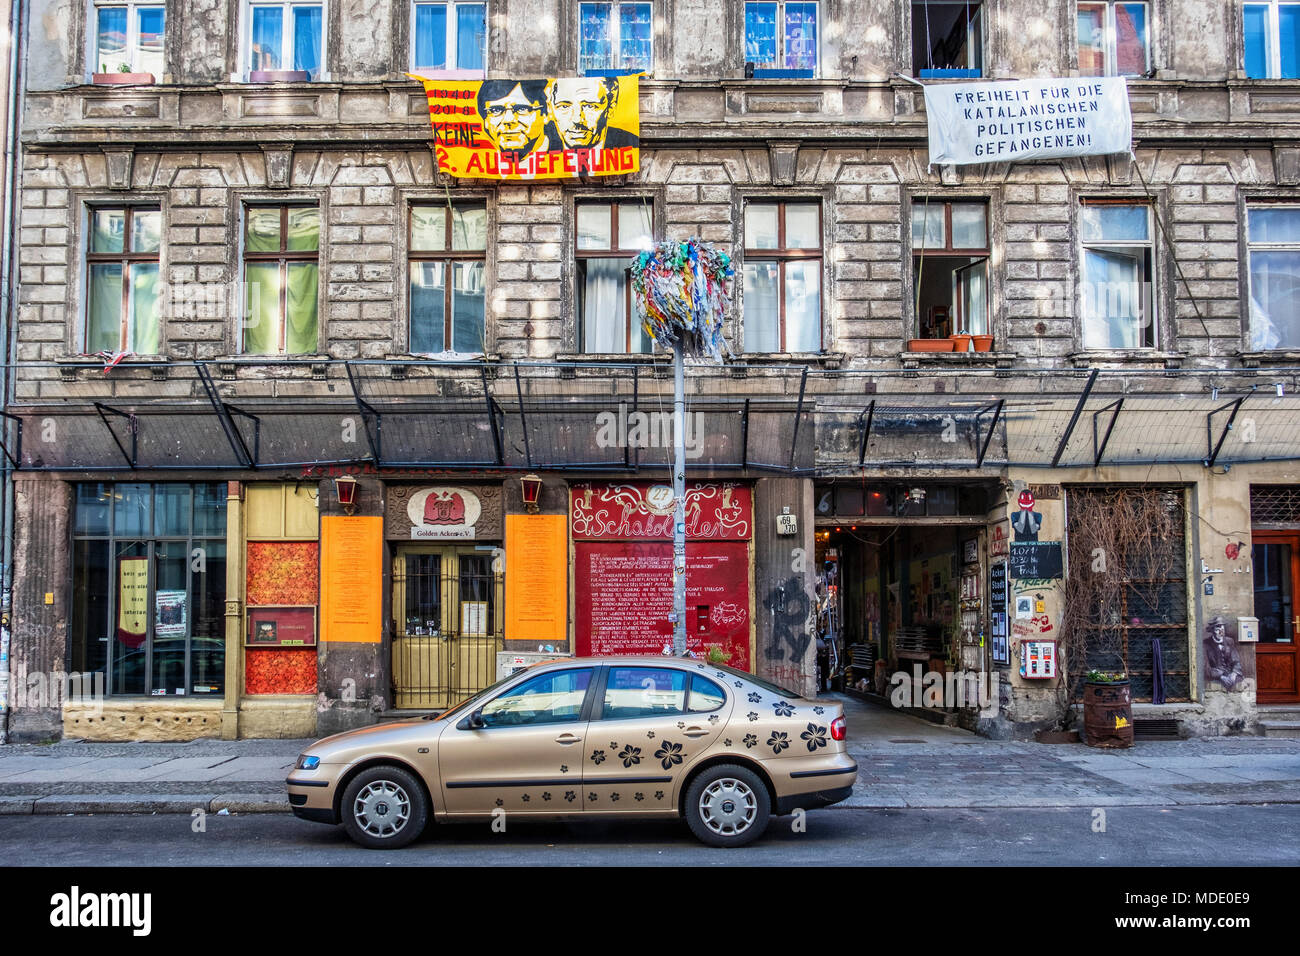 Berlin, Mitte. Schokoladen Cultural Project in weathered old building in Ackerstrasse with Banner supporting Carles Puigdemont, - Stock Image